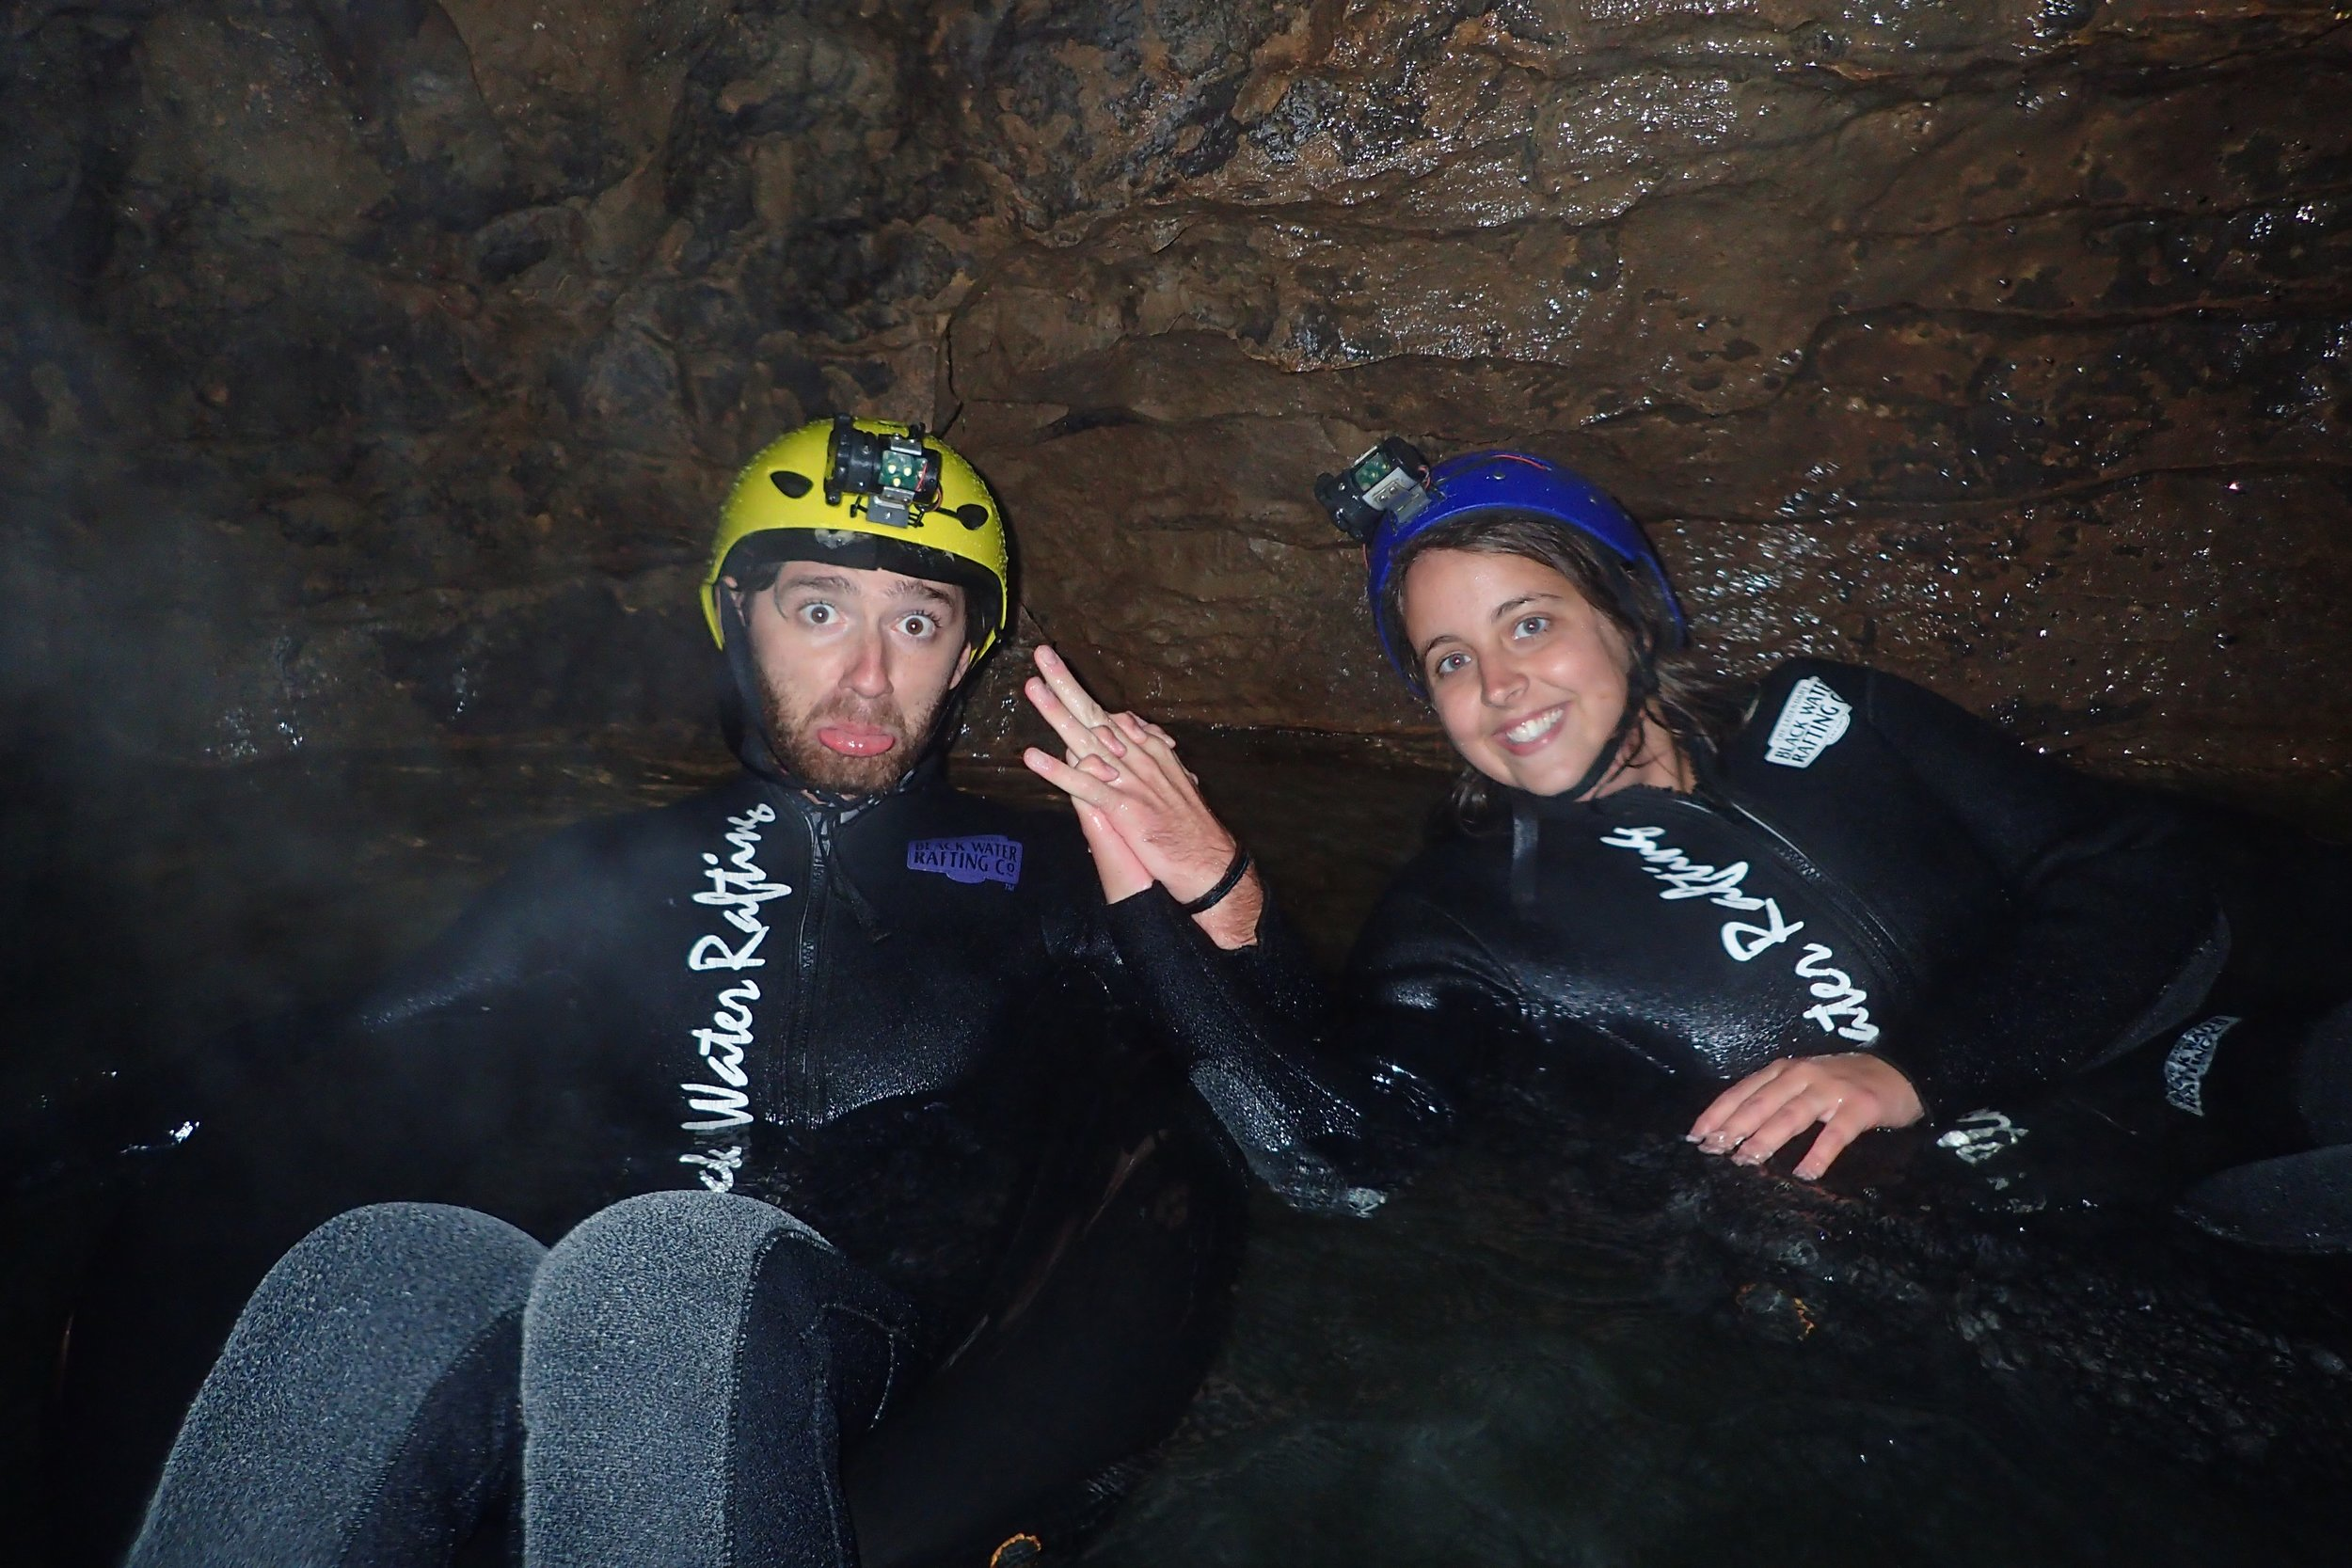 Photo taken in the cave by our guides from  The Legendary Black Water Rafting Co.